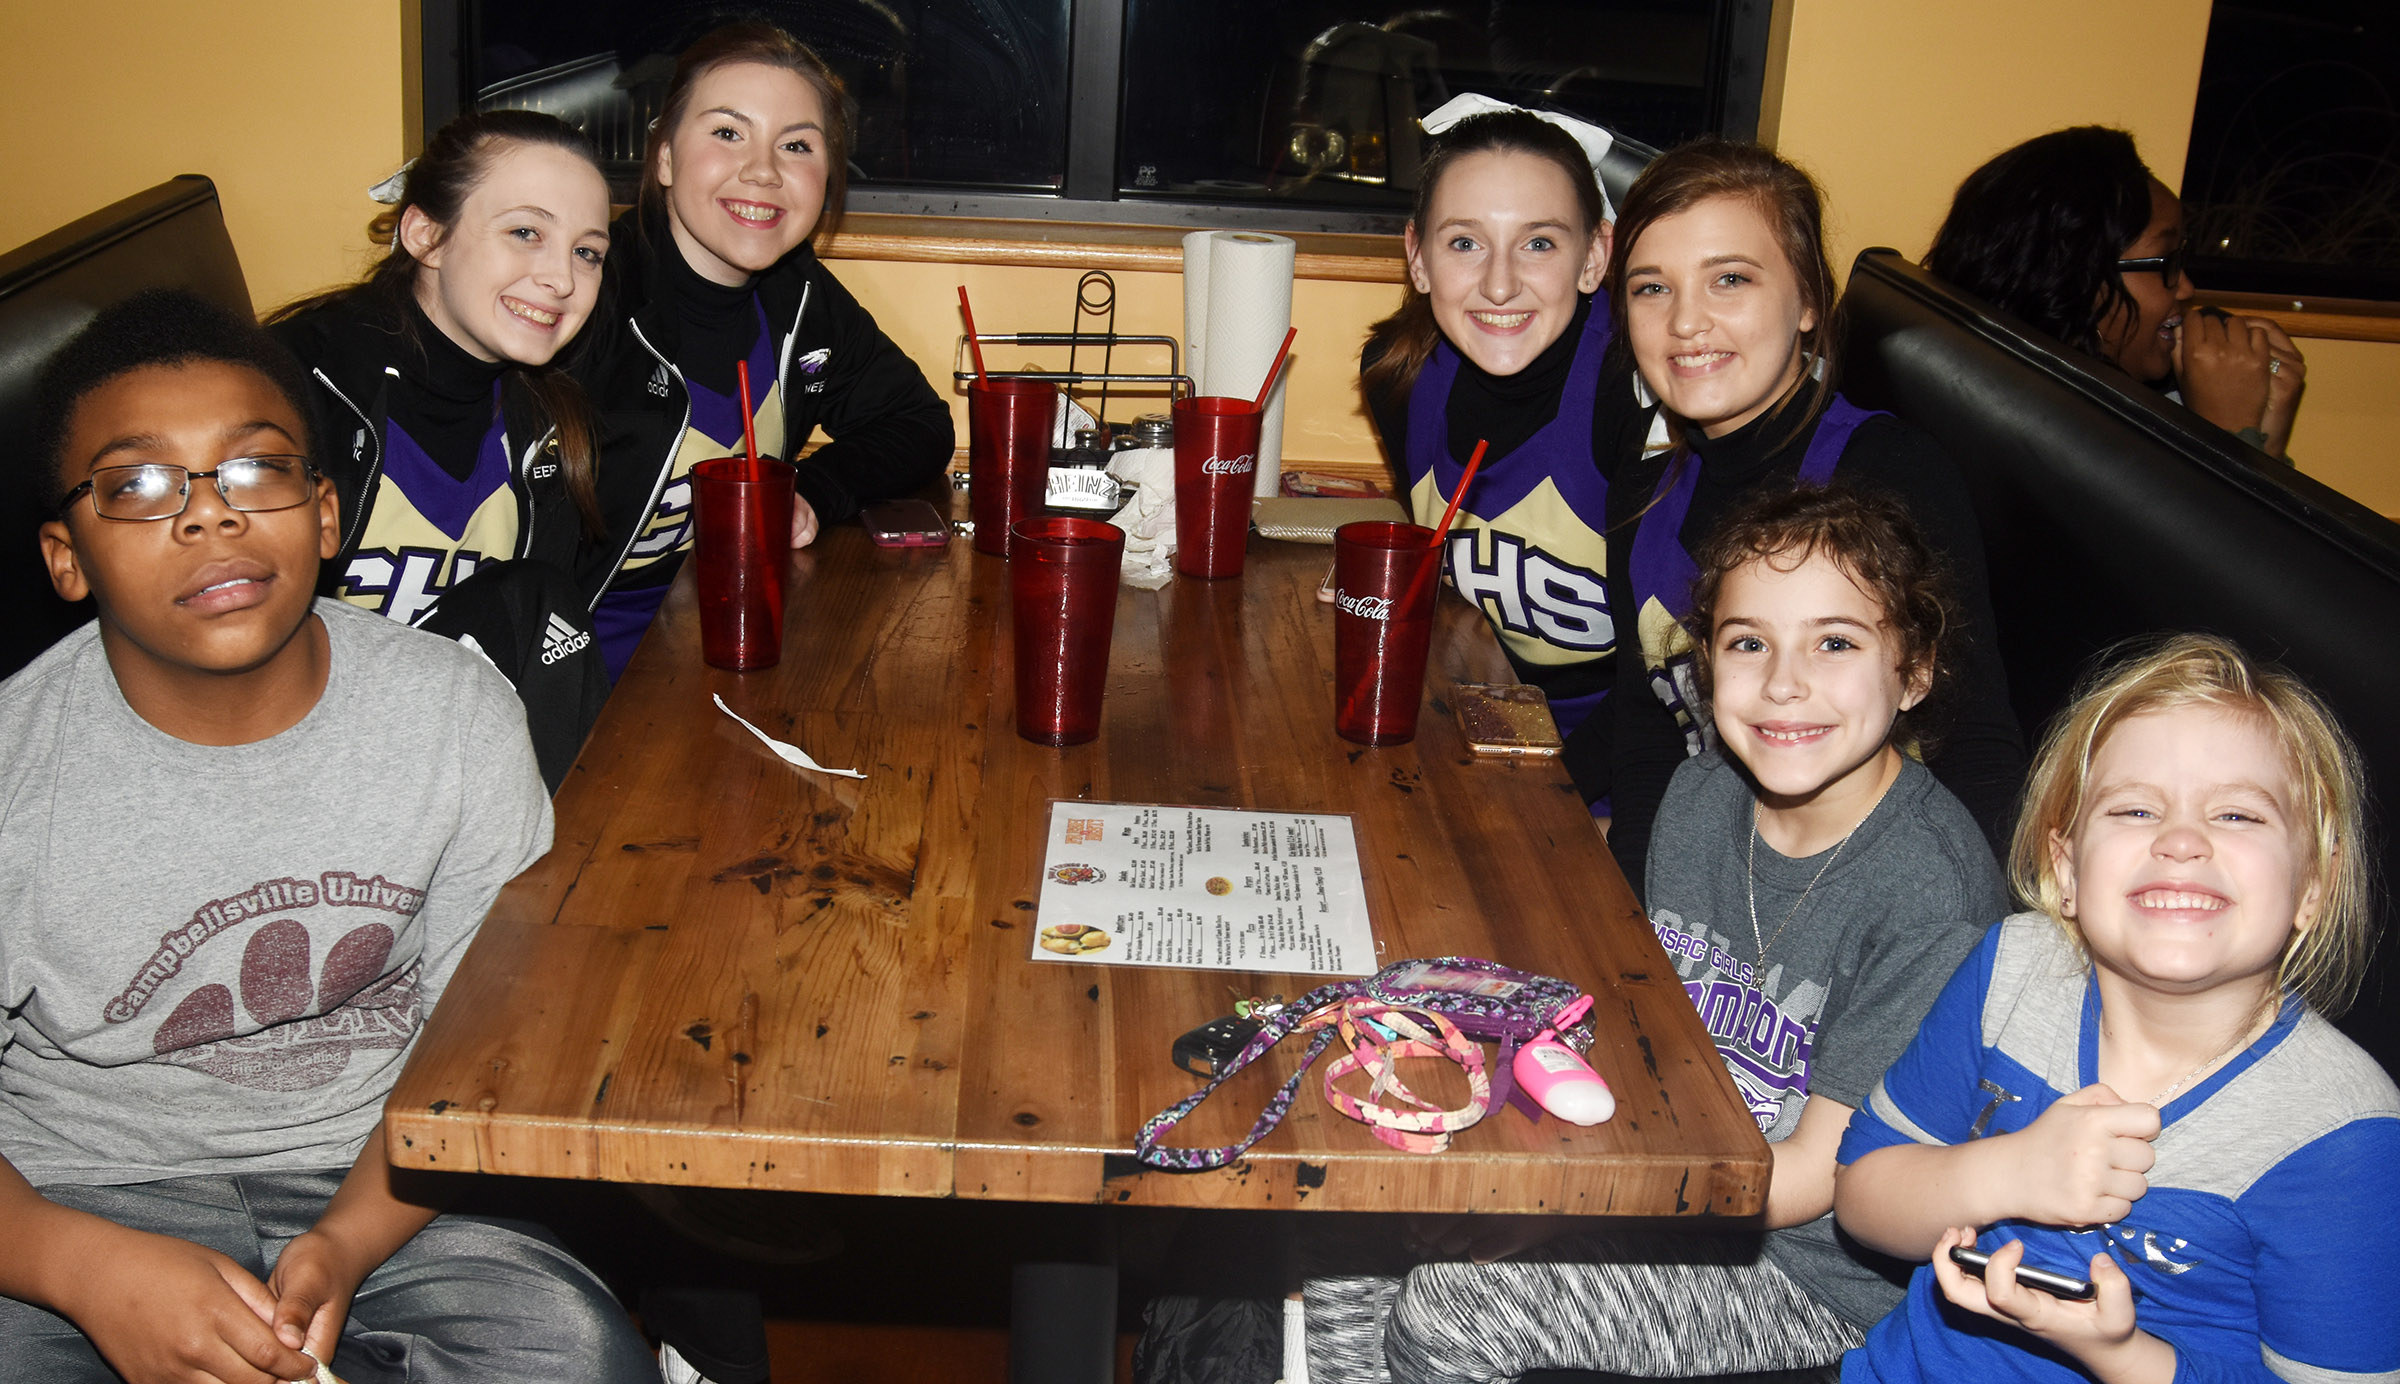 CHS cheerleaders and fans enjoy a celebration at Wings, Pizza N Things.